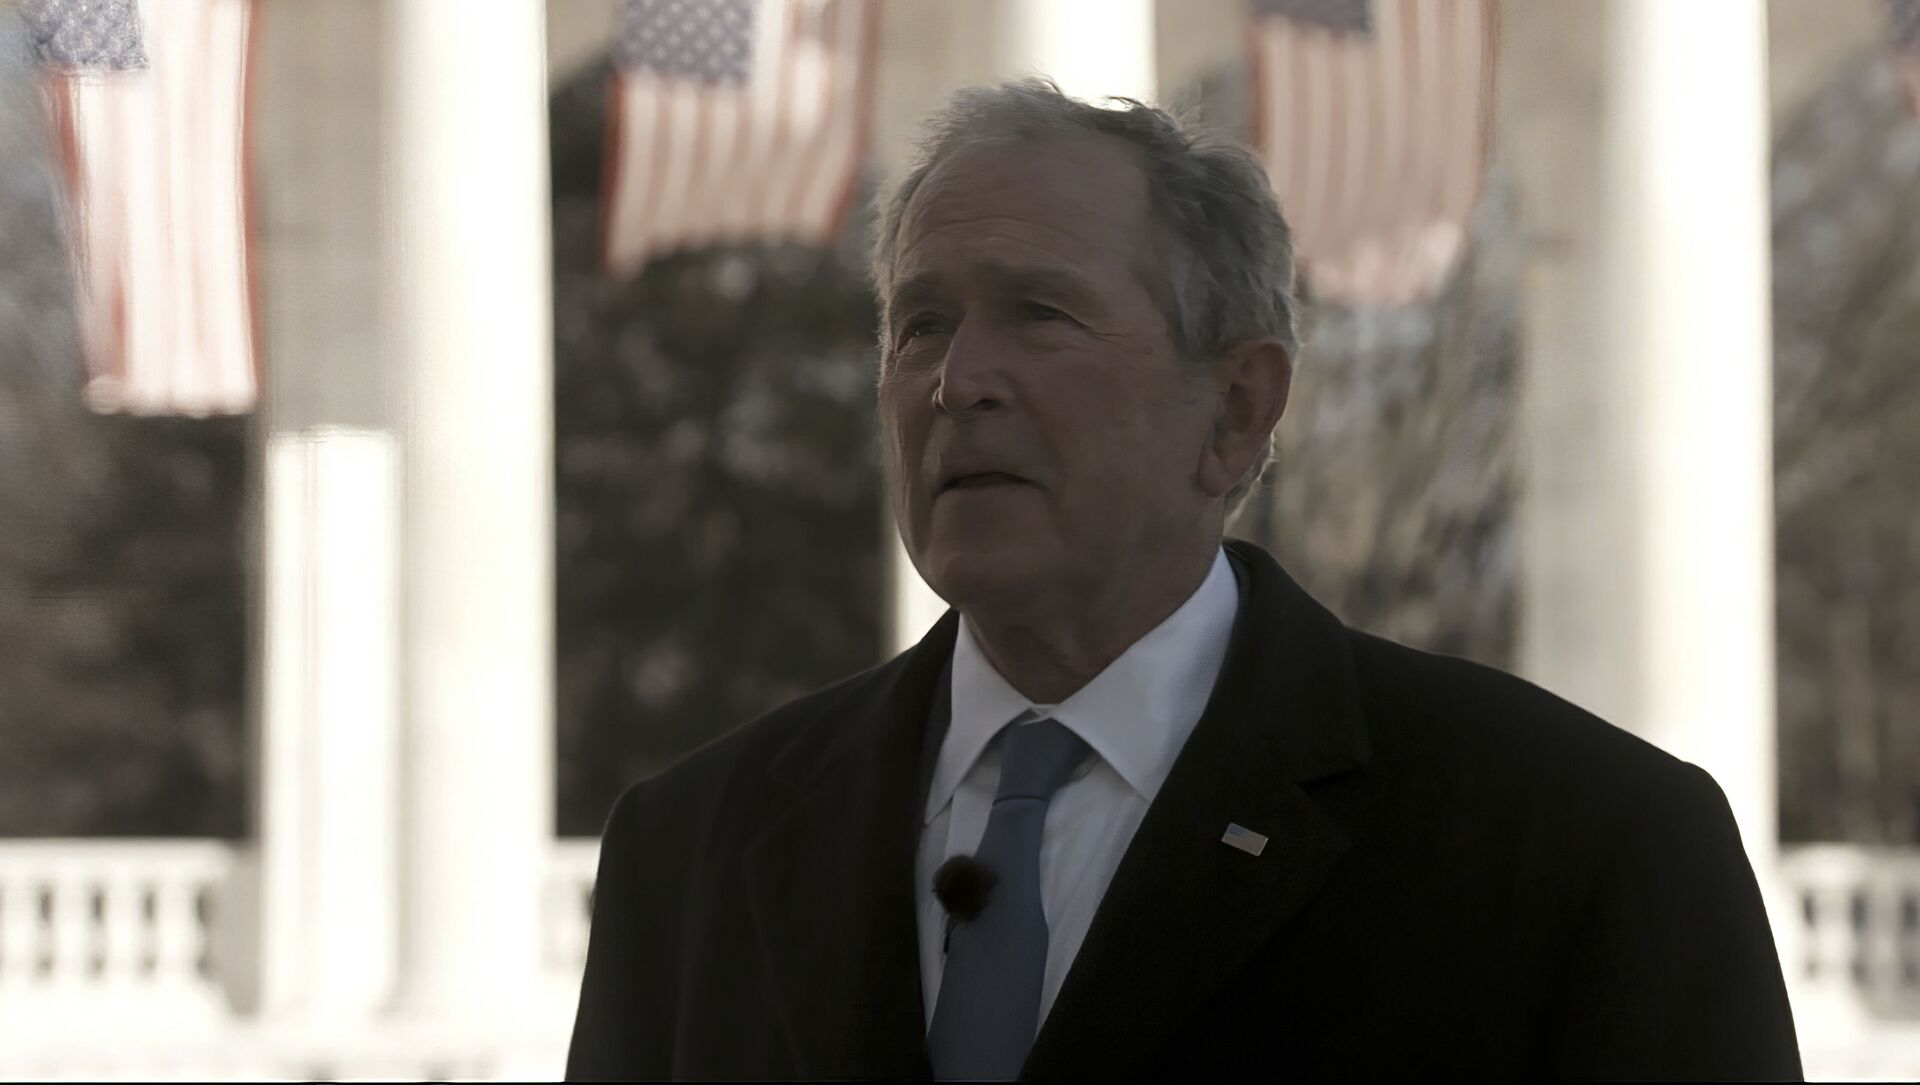 In this image from video, former President George W. Bush speaks during a Celebrating America concert on Wednesday, Jan. 20, 2021, part of the 59th Inauguration Day events for President Joe Biden sworn in as the 46th president of the United States. - Sputnik International, 1920, 14.07.2021